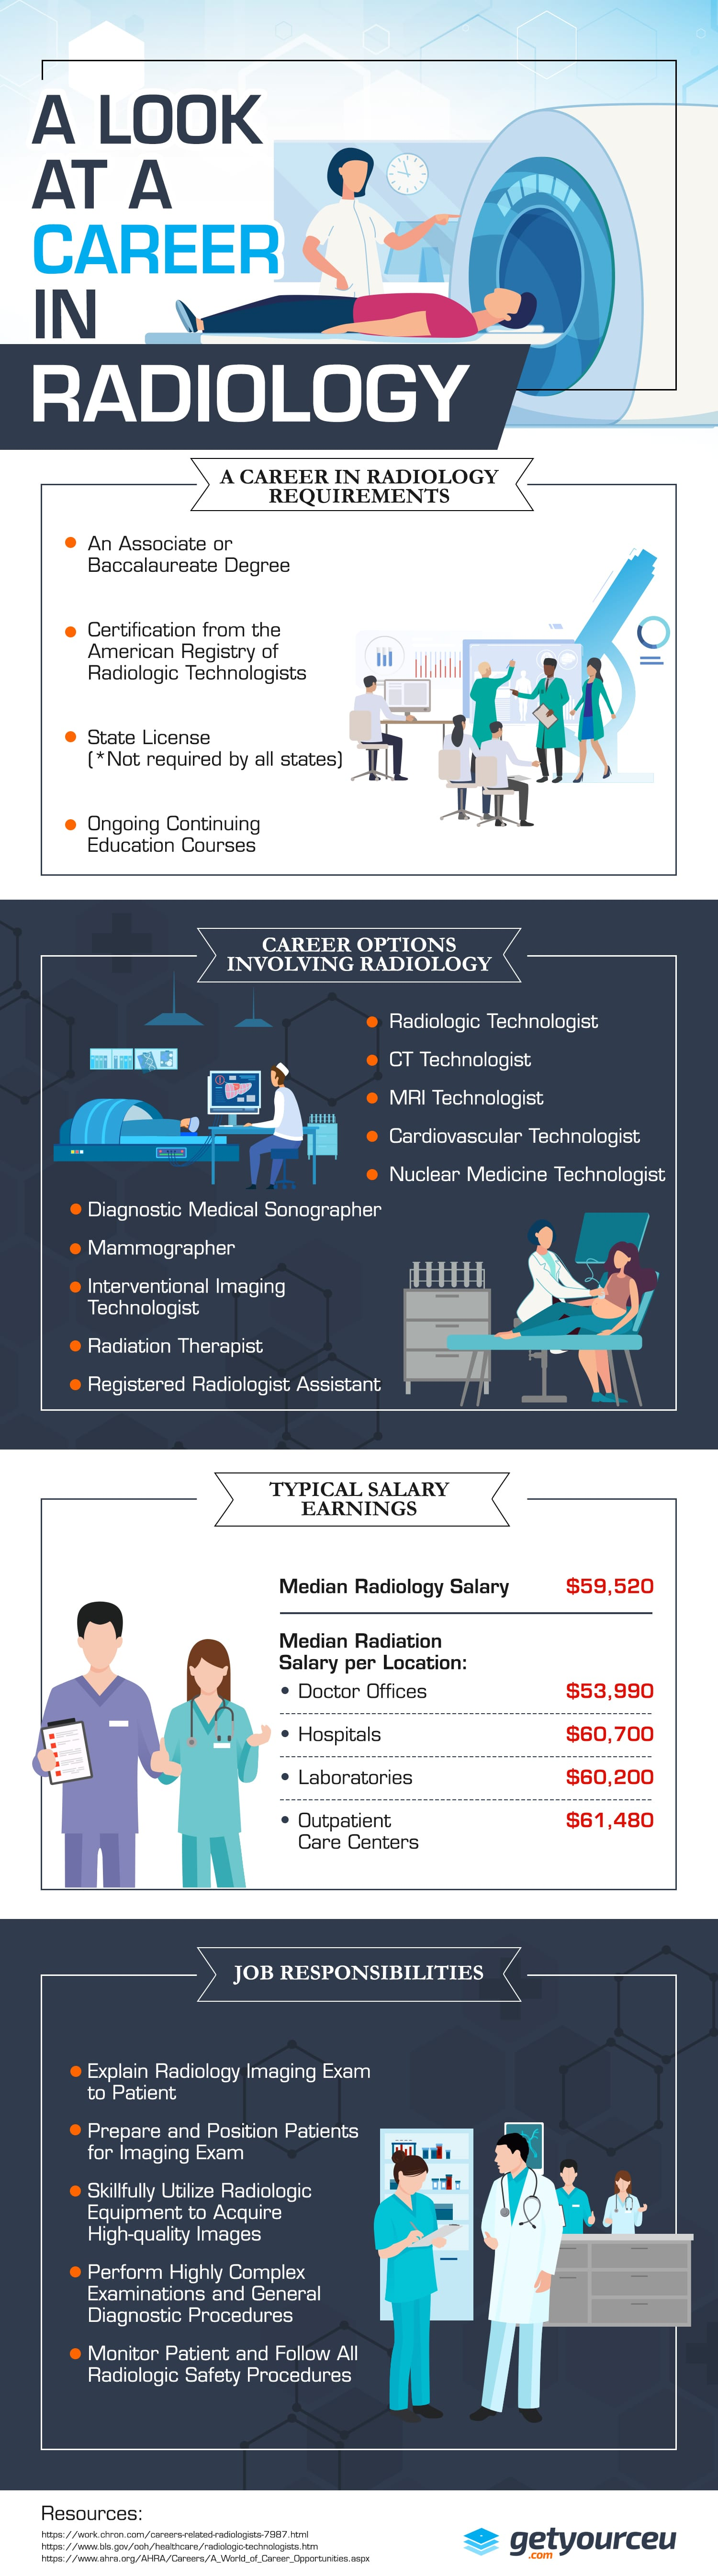 A Career in Radiology